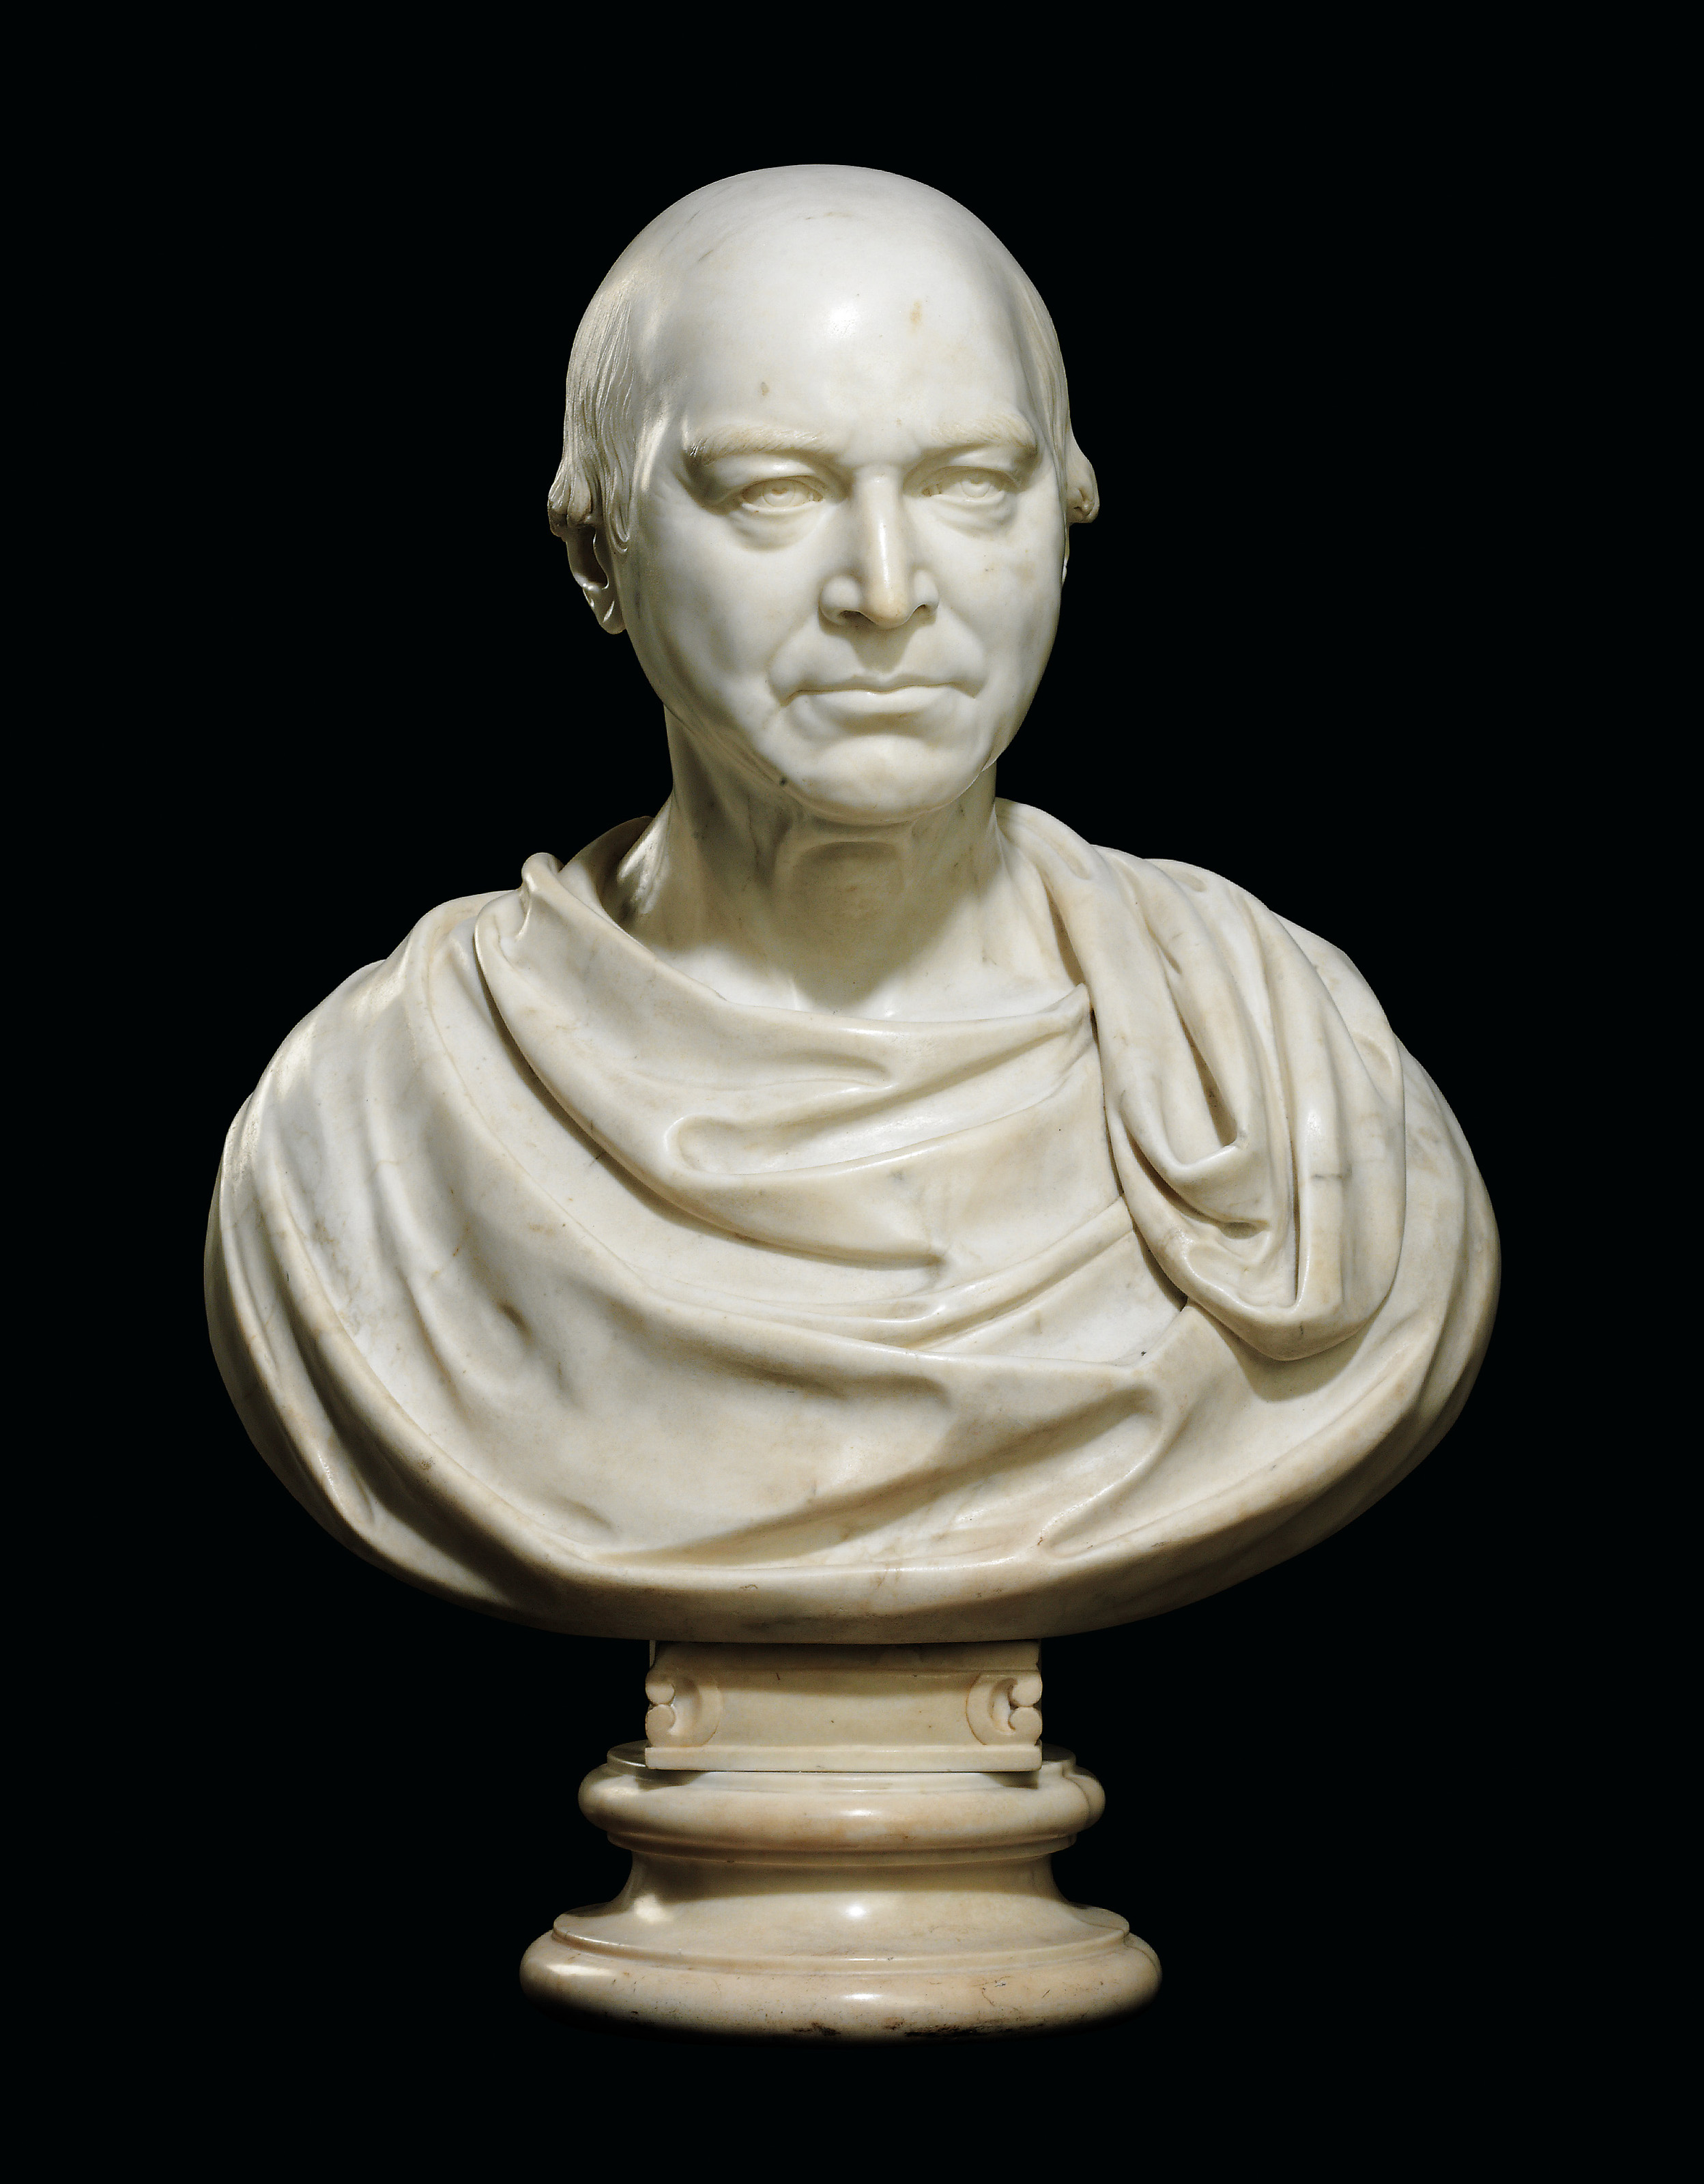 A MARBLE BUST OF A GENTLEMAN